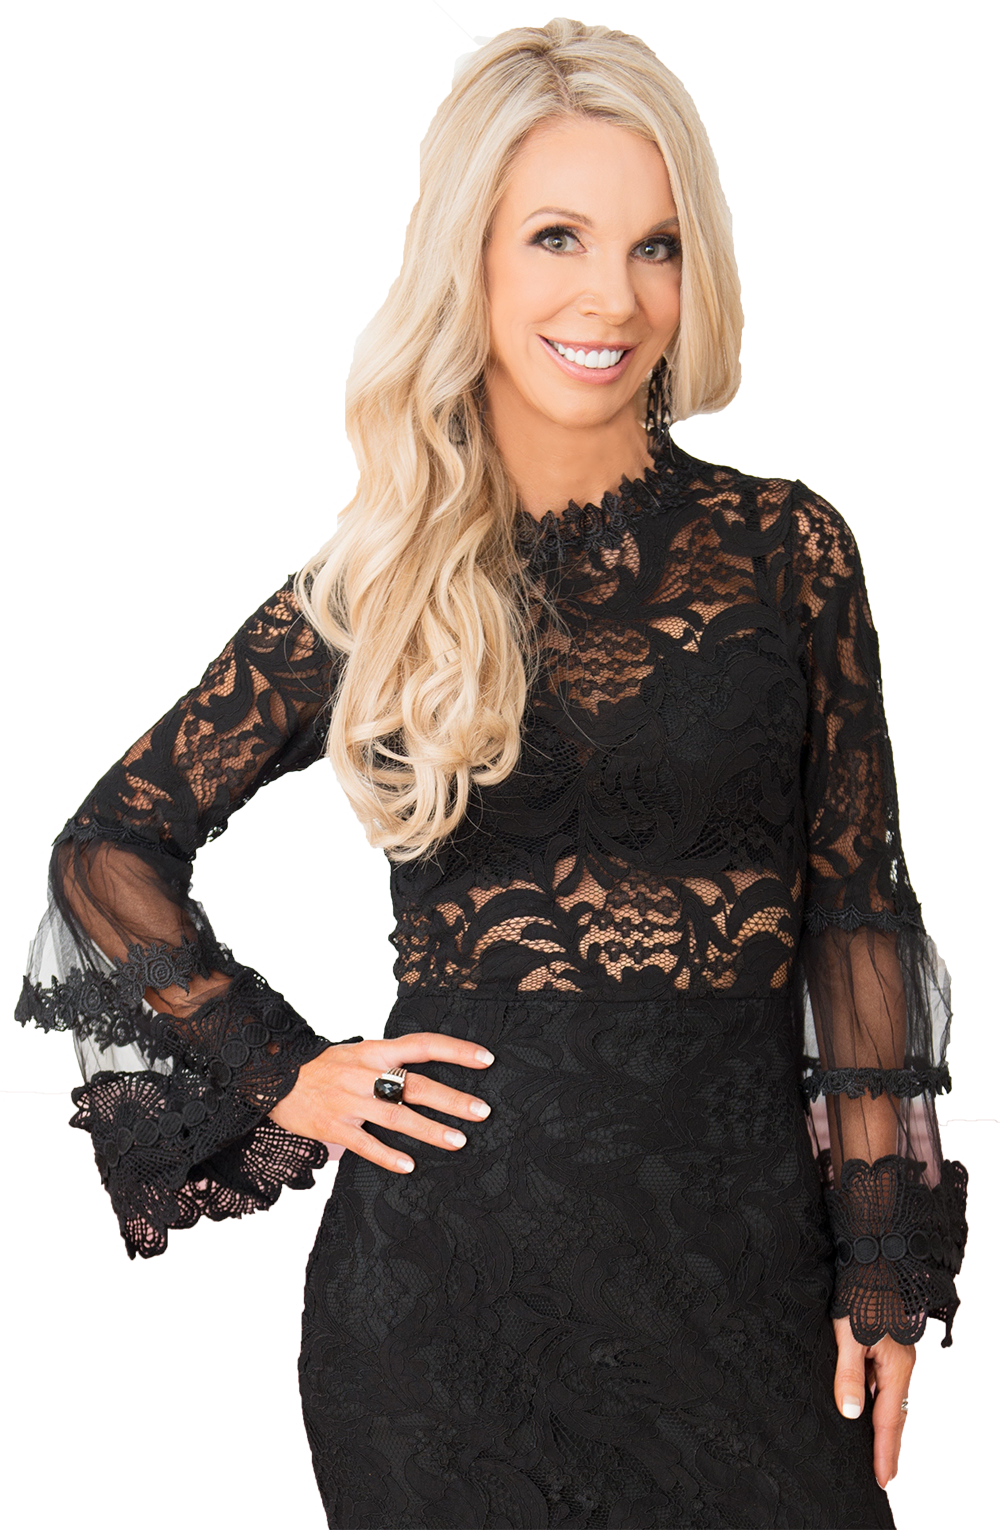 Michele Greer Transformational & Lifestyle Coach